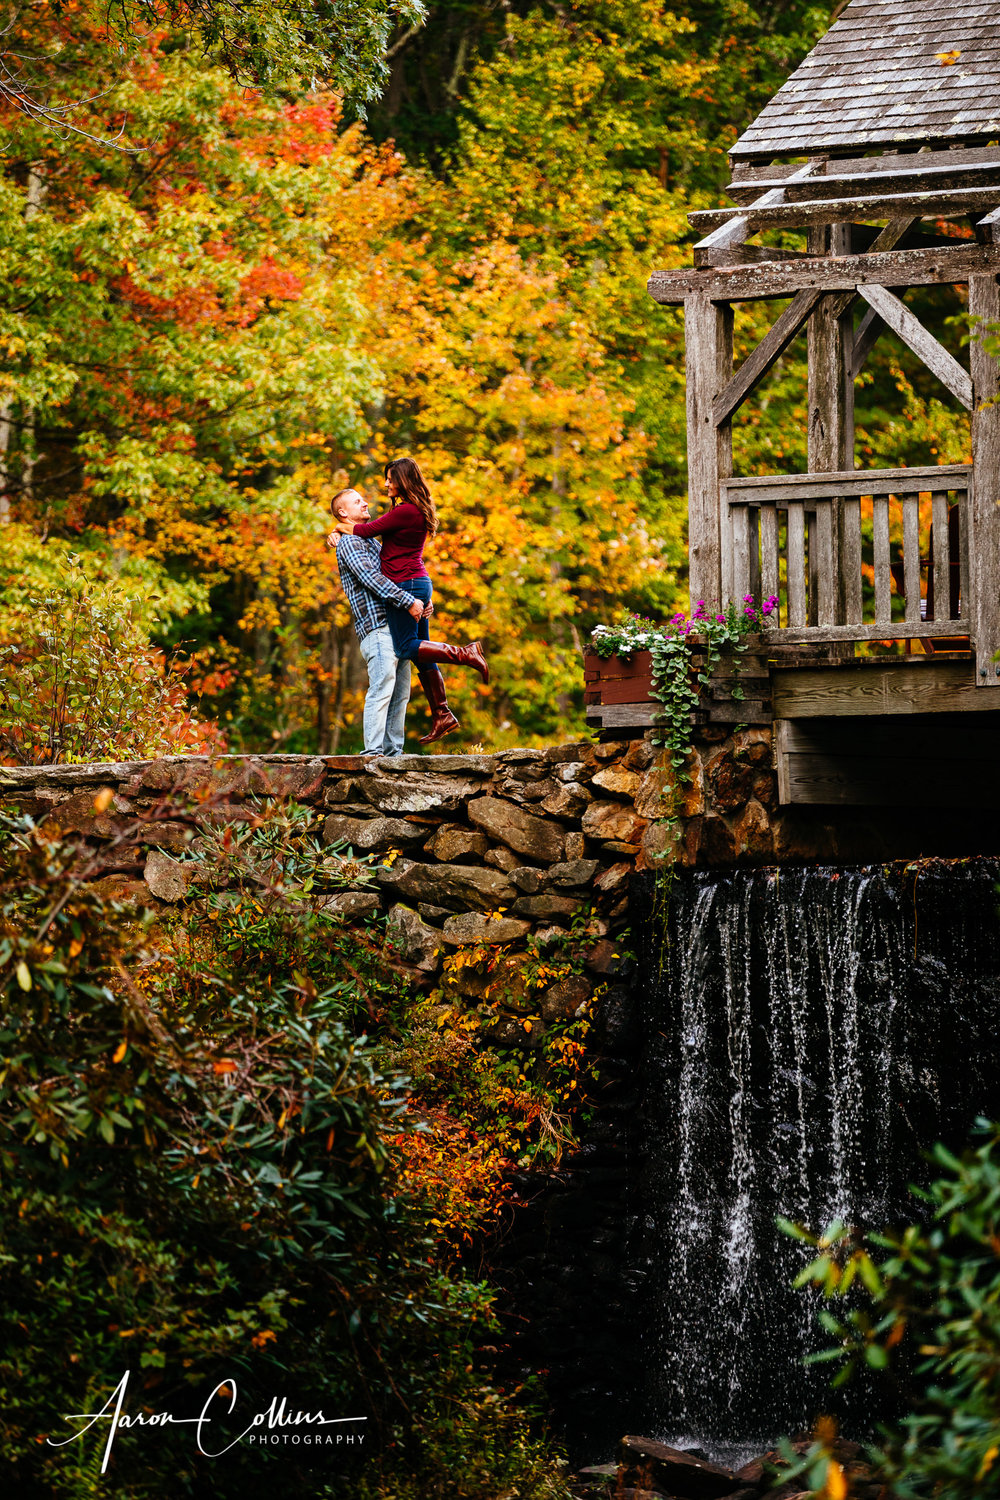 Fiance and bride to be standing over waterfall surrounded by fall foliage at Moore State Park for a New England engagement session.